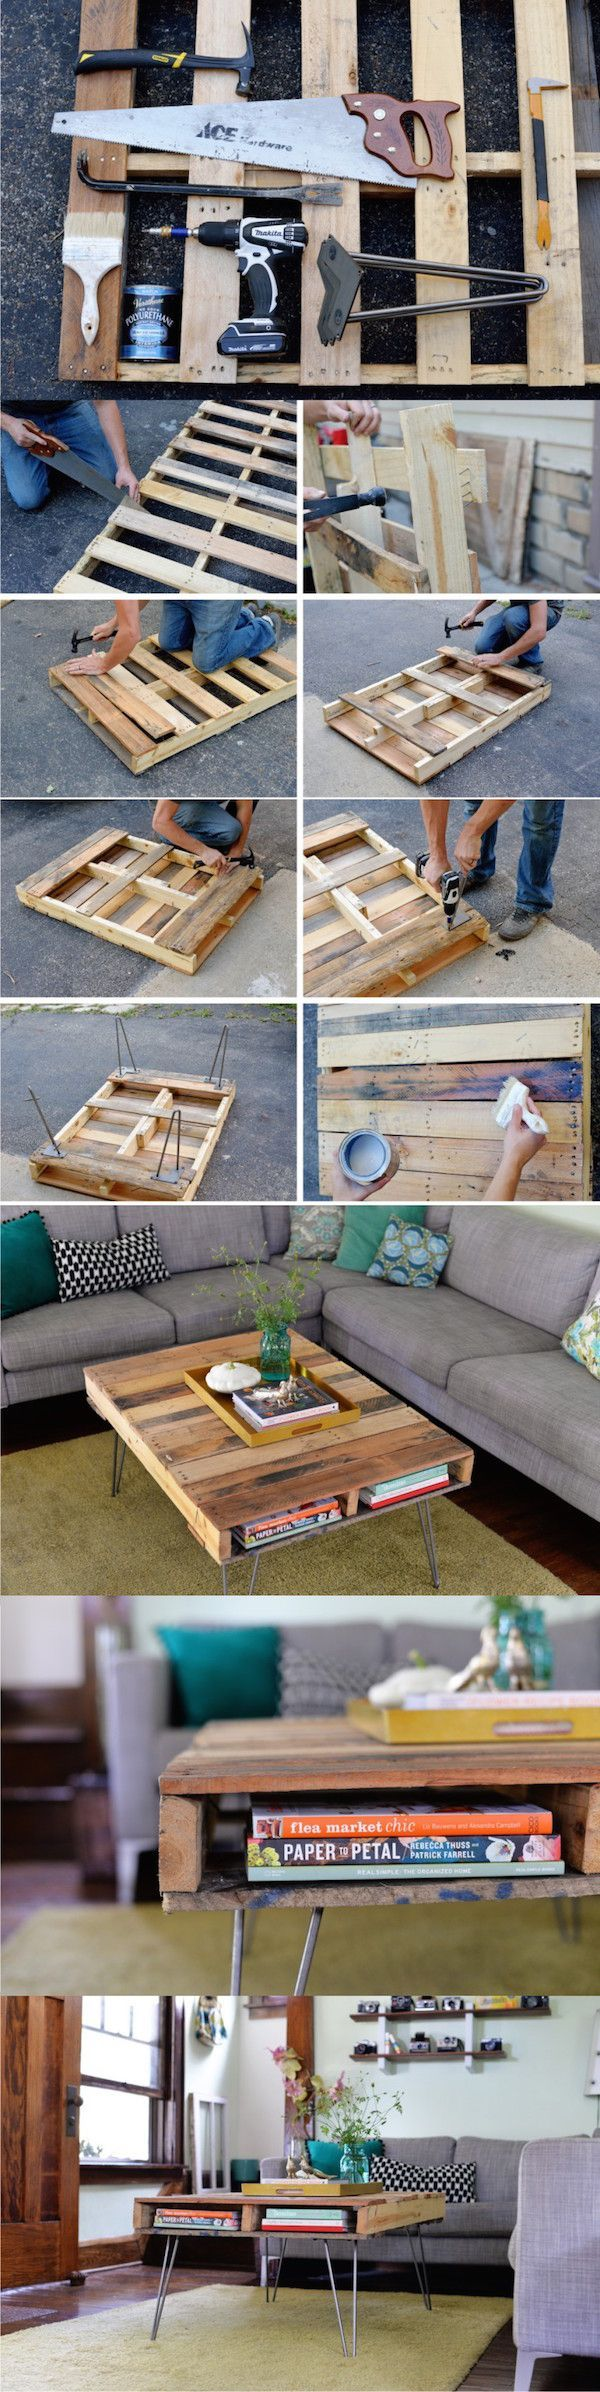 60 Best Design Images On Pinterest Home Ideas Salvaged Furniture Pdf Wiring Boat Trailer Lights Flat Bottom For Sale Bestdiywood Although We Have Seen Many Examples Of Pallet Coffee Tables Never Tired How